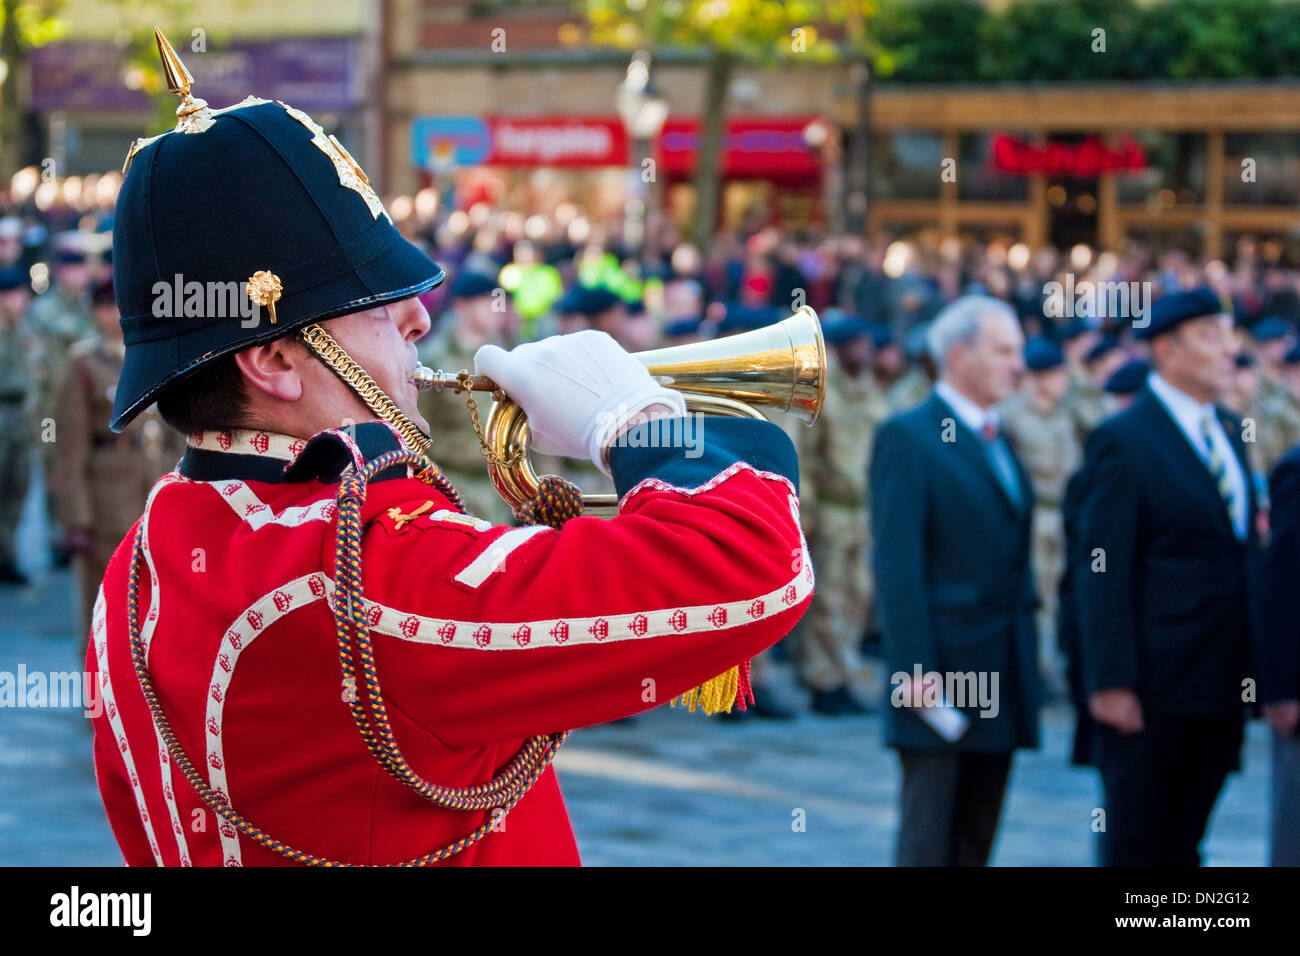 Bugler sounds the Last Post at the 2013 Remembrance Sunday Parade in Preston, Lancashire - Stock Image